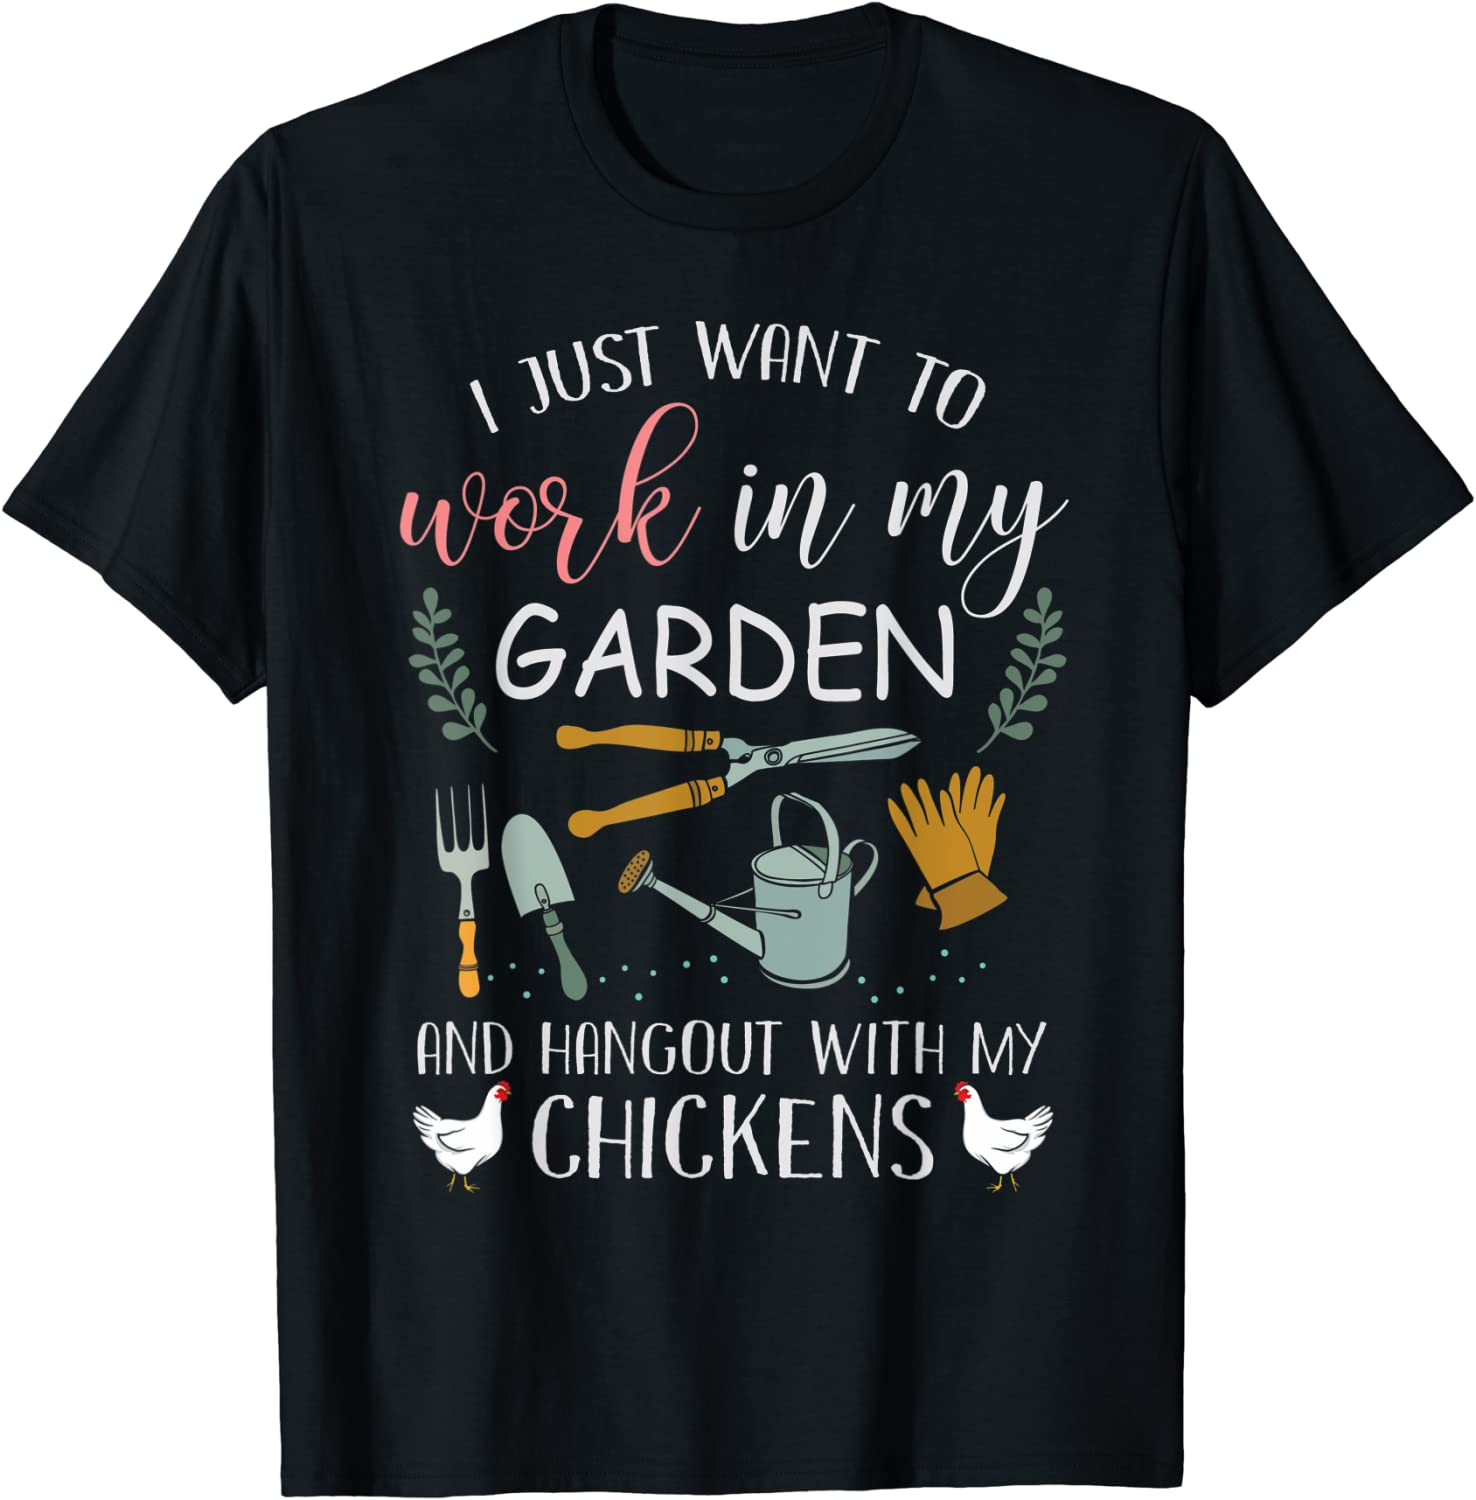 I Just Want To Work In My Garden Hangout With My Chickens T-Shirt